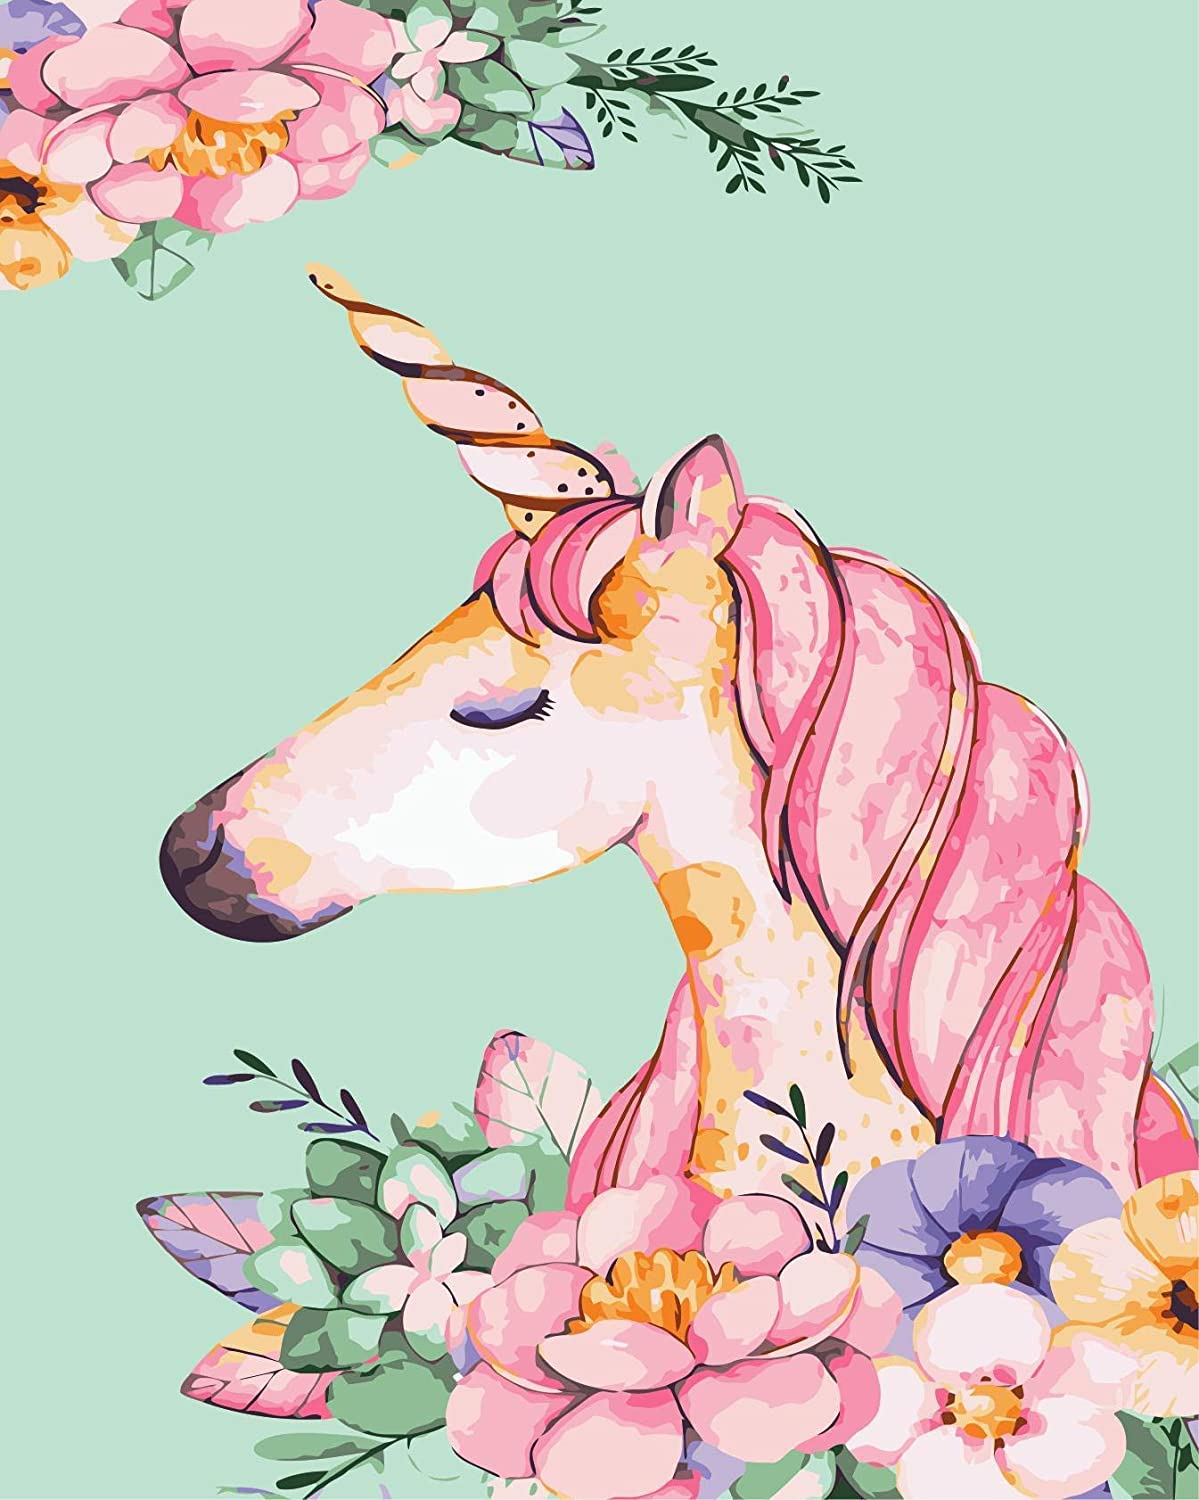 DIY Digital Painting by Numbers Acrylic Kitsfor Adult and Kids Canvas Painting Picture (Unicorn)